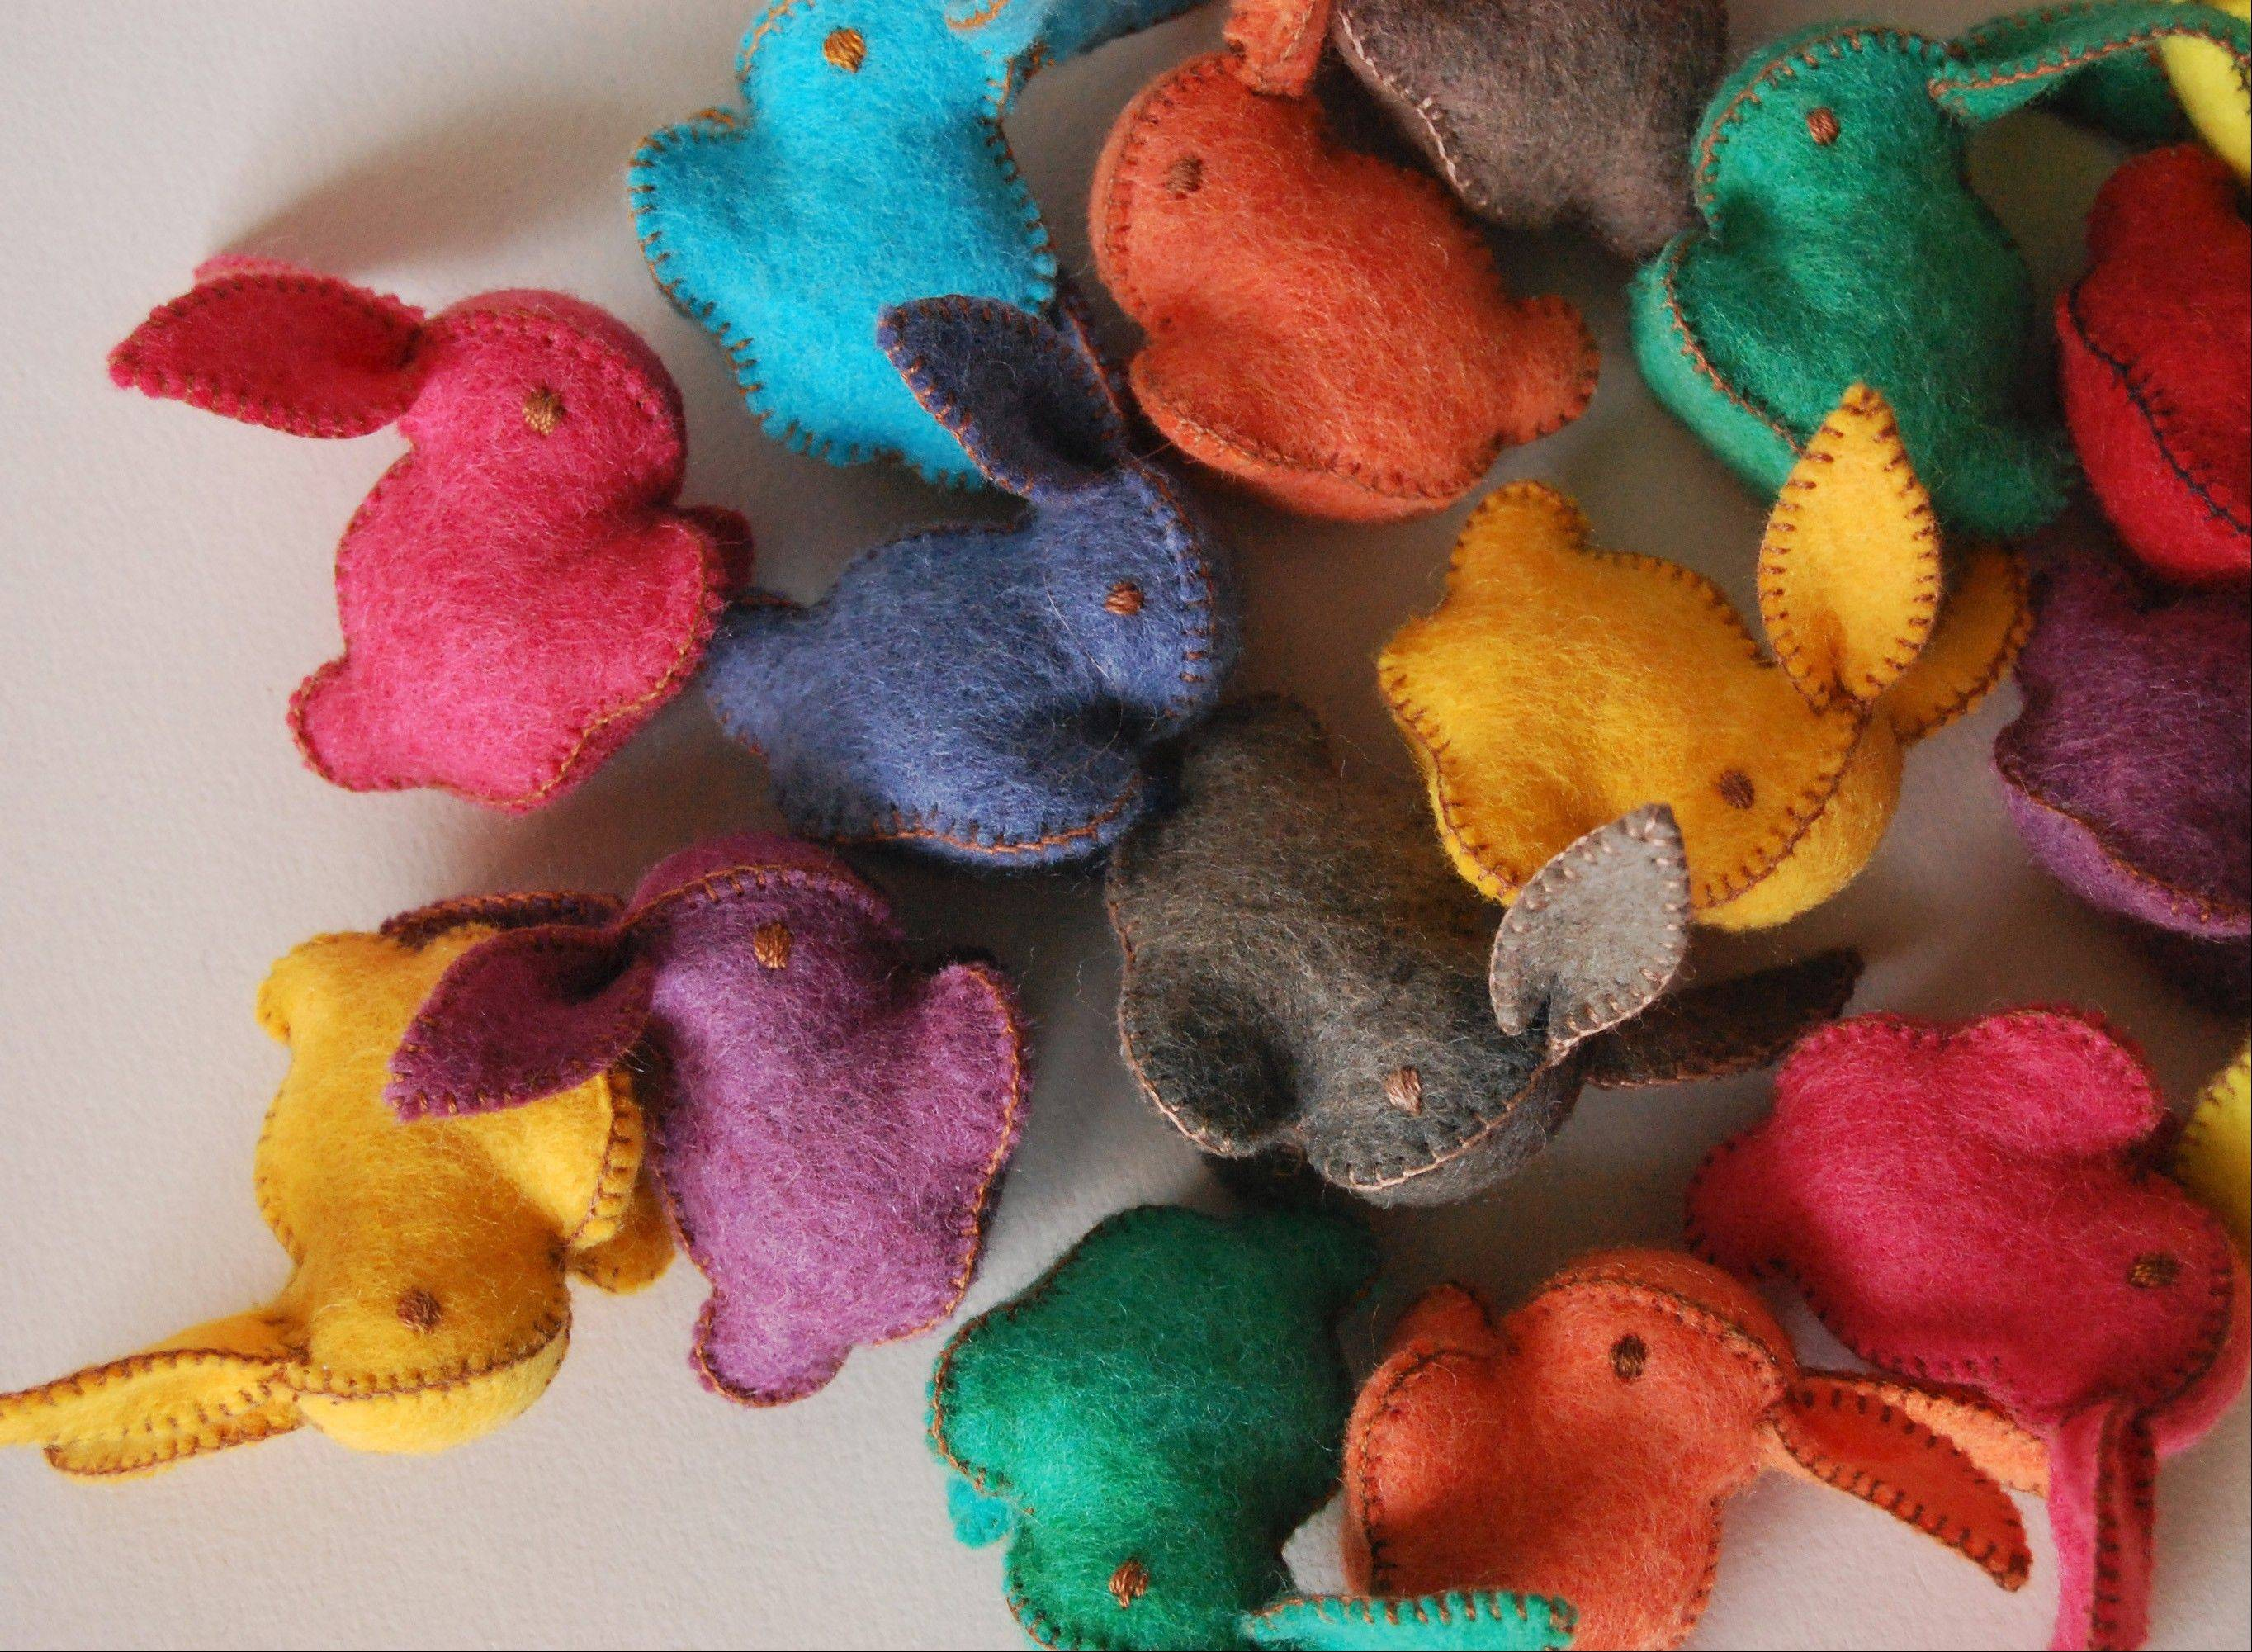 Canadian textile artist Cristina Larsen of Textile Platypus crafts stuffed felted bunnies and chicks in a rainbow of hues that can be found at www.etsy.com/shop/textileplatypus.